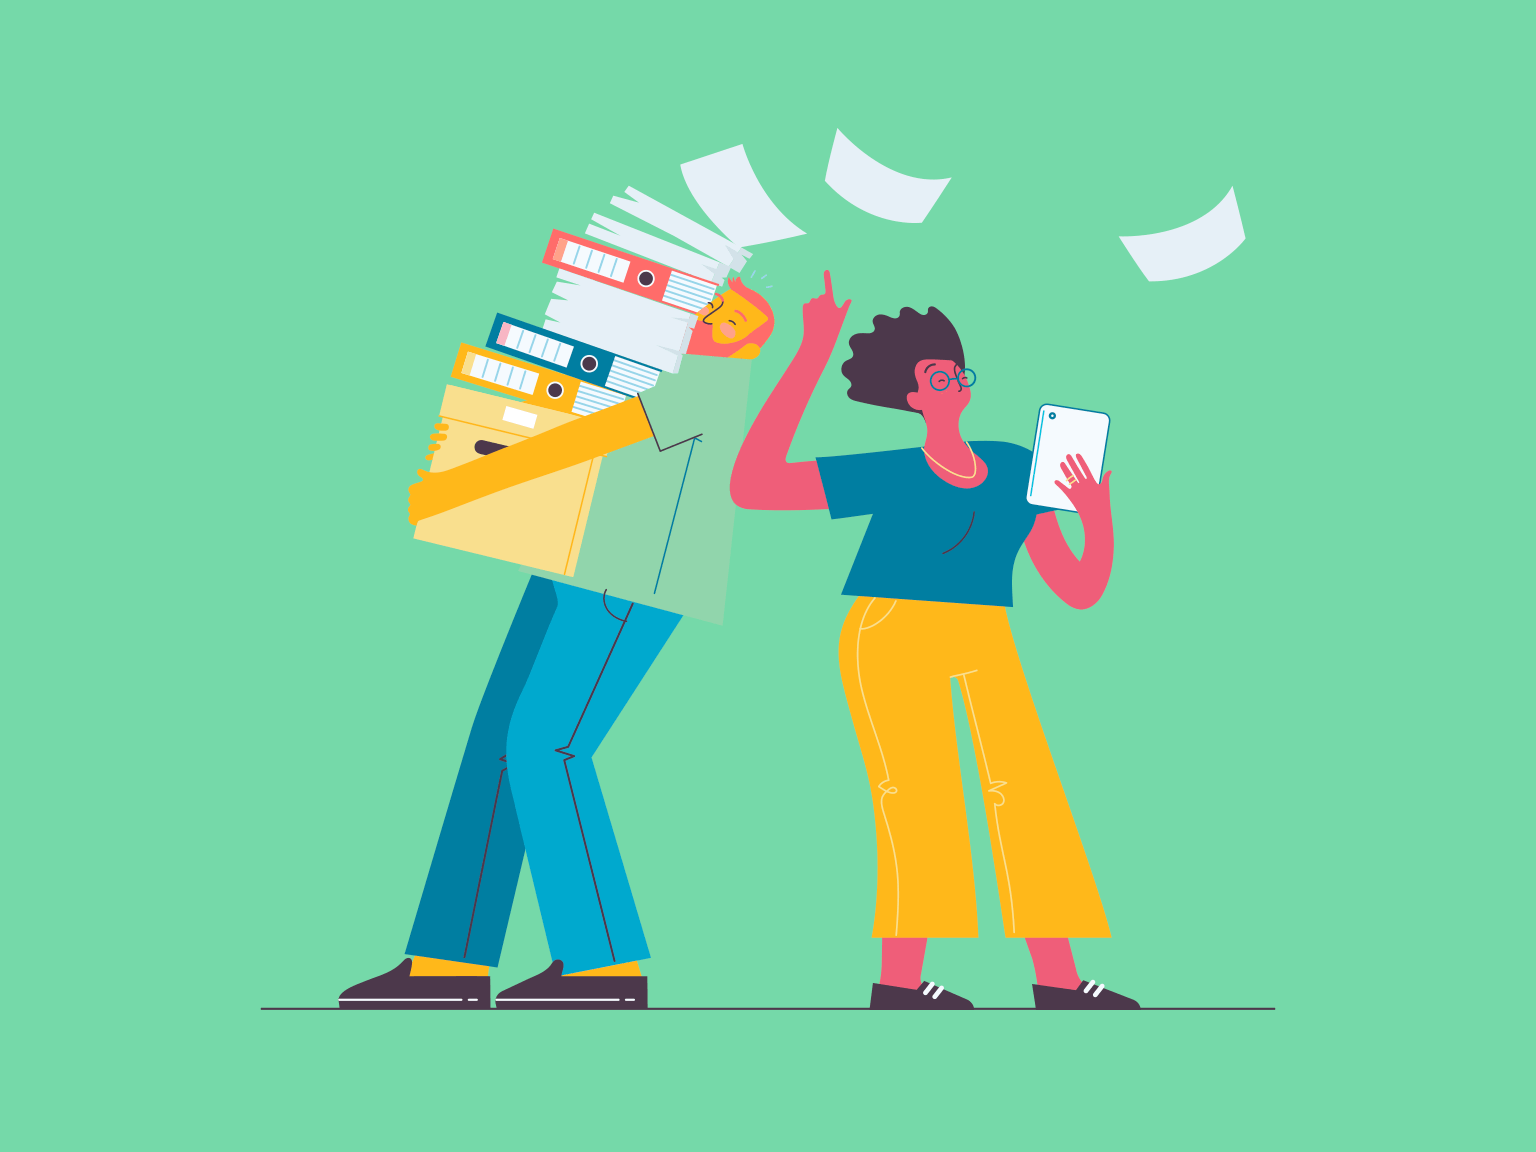 An illustration of a man carrying a stack of paper and folders and a woman with a tablet